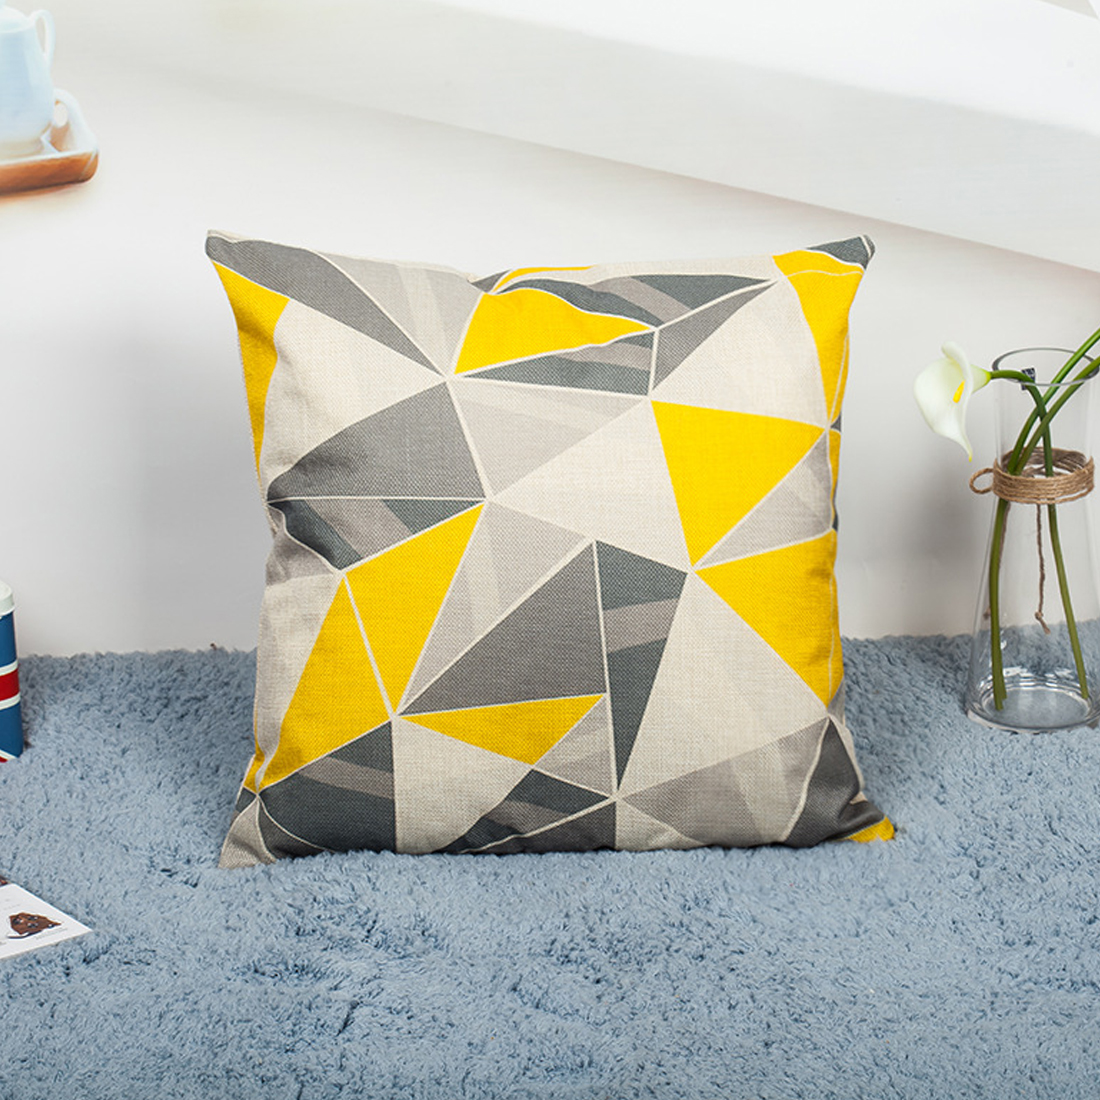 size creative delightfully of accent twig red painting furniture drum inspirational rooms couch full magnificent interior room bold two pillow gray yellow polyester eclectic fabric for dried upholstered decor sophisticated table pillows a living coffee tufted lamp home